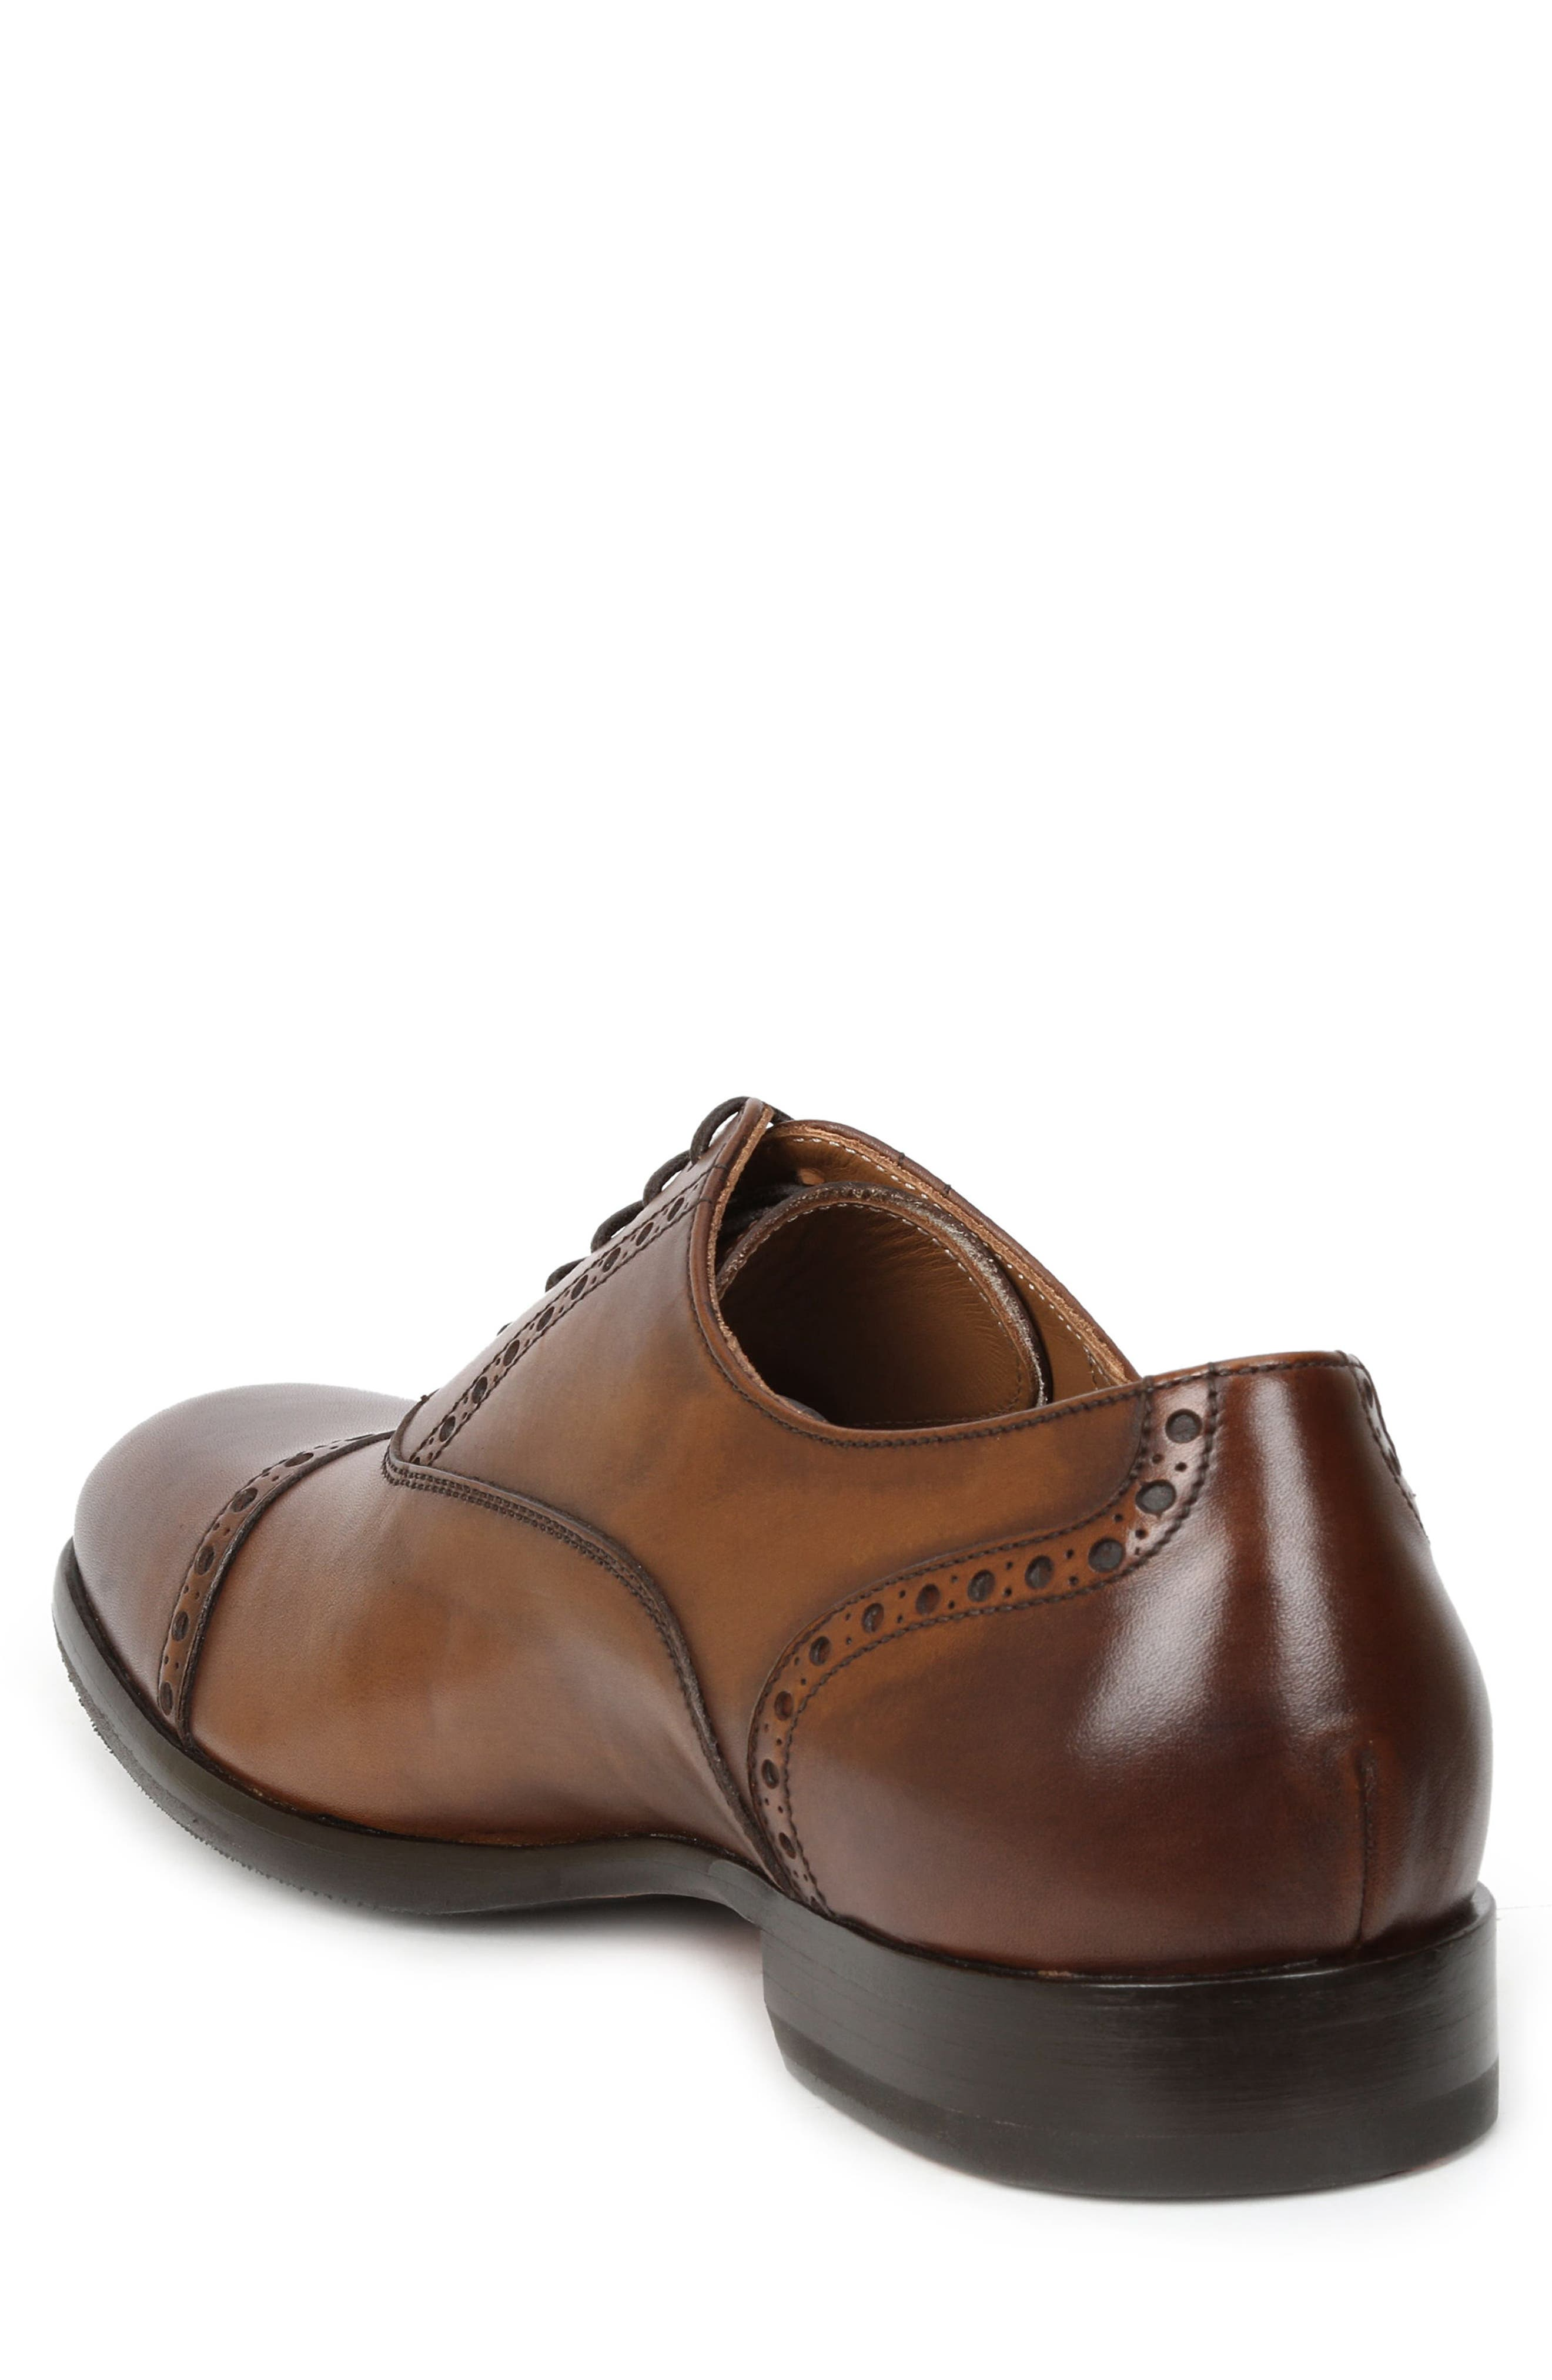 Pisa Cap Toe Oxford,                             Alternate thumbnail 2, color,                             Cognac